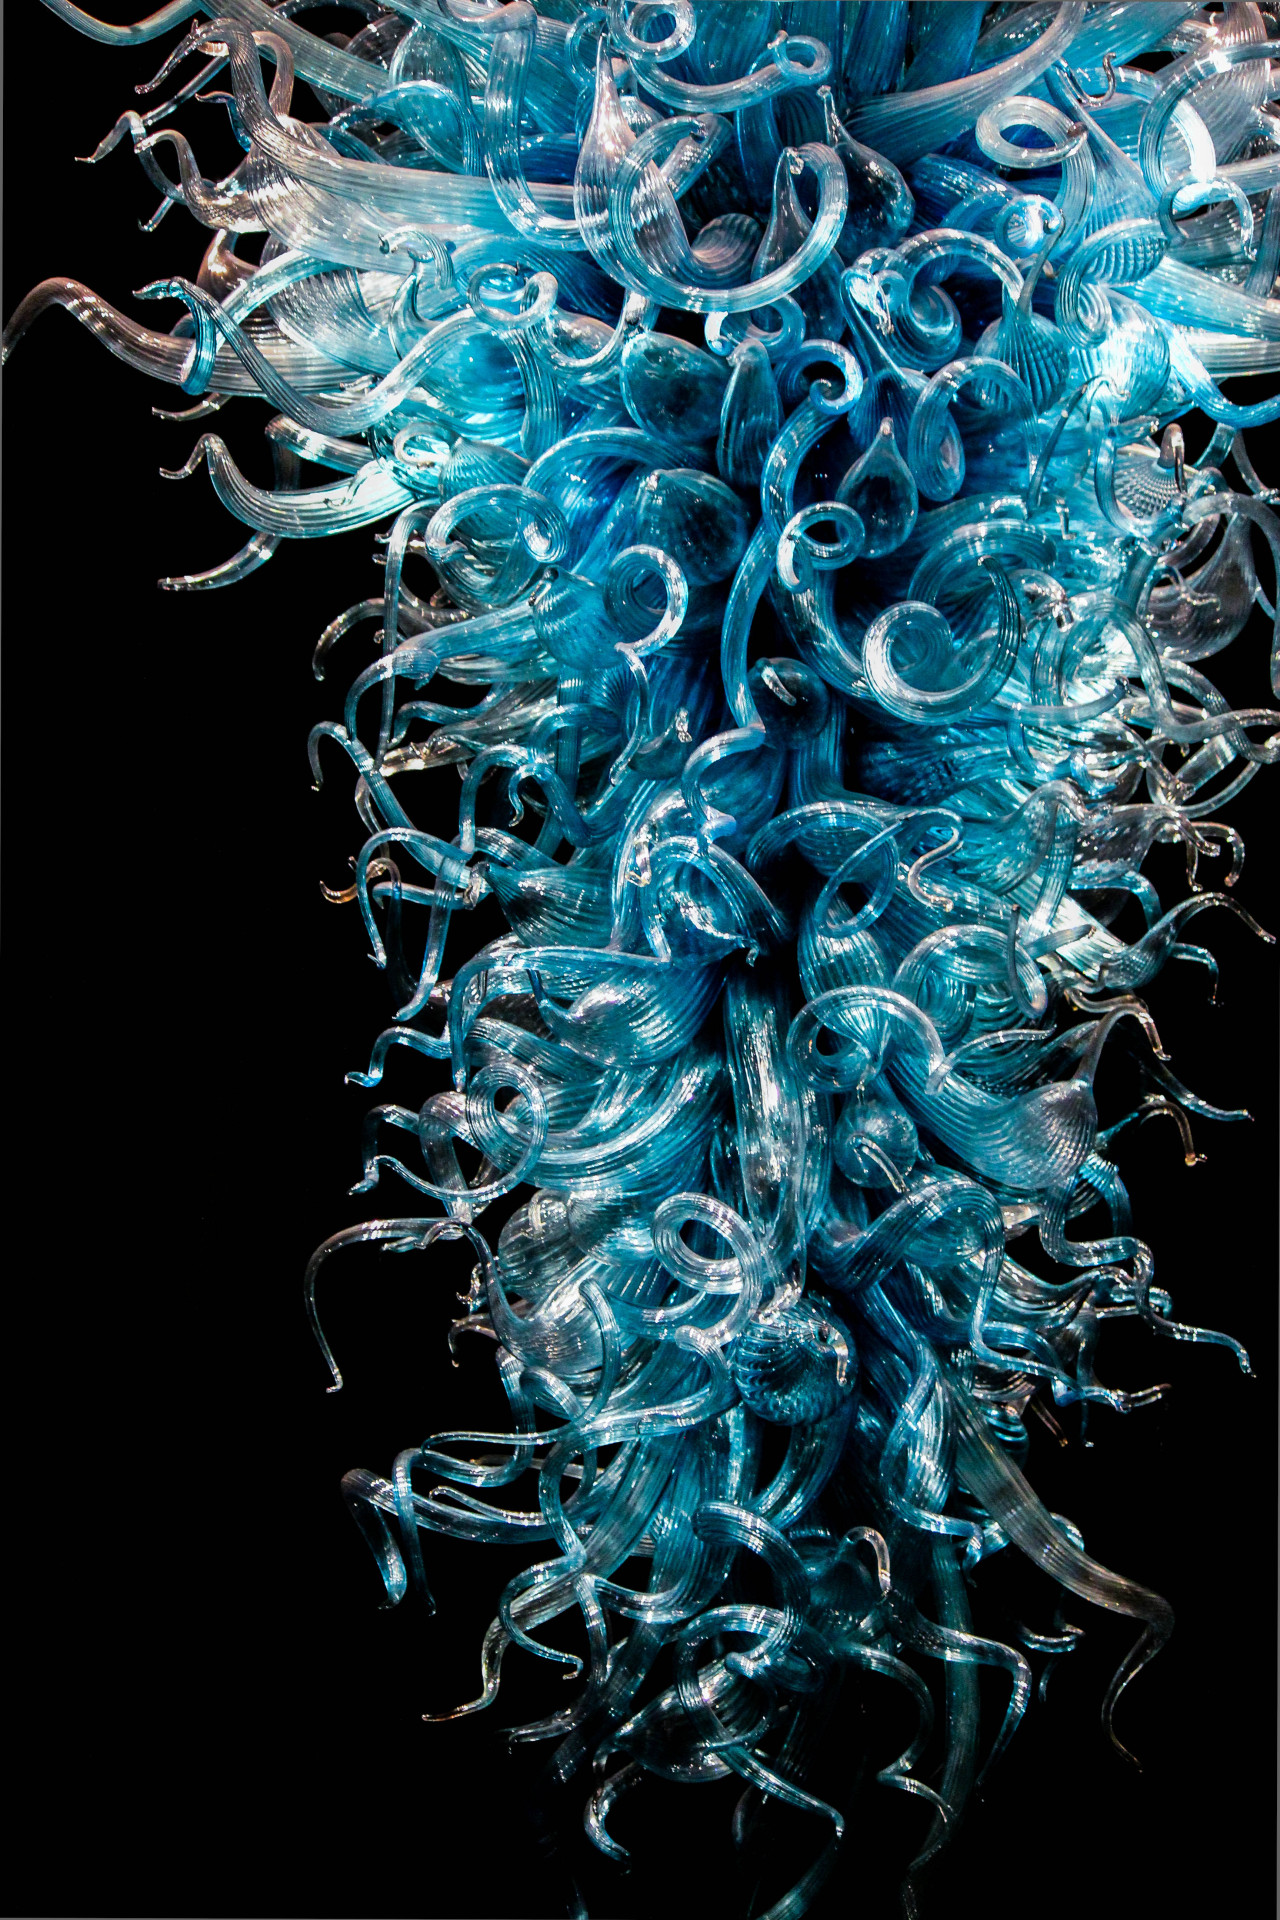 babalou71:  dale chihuly:blown glass sculpture